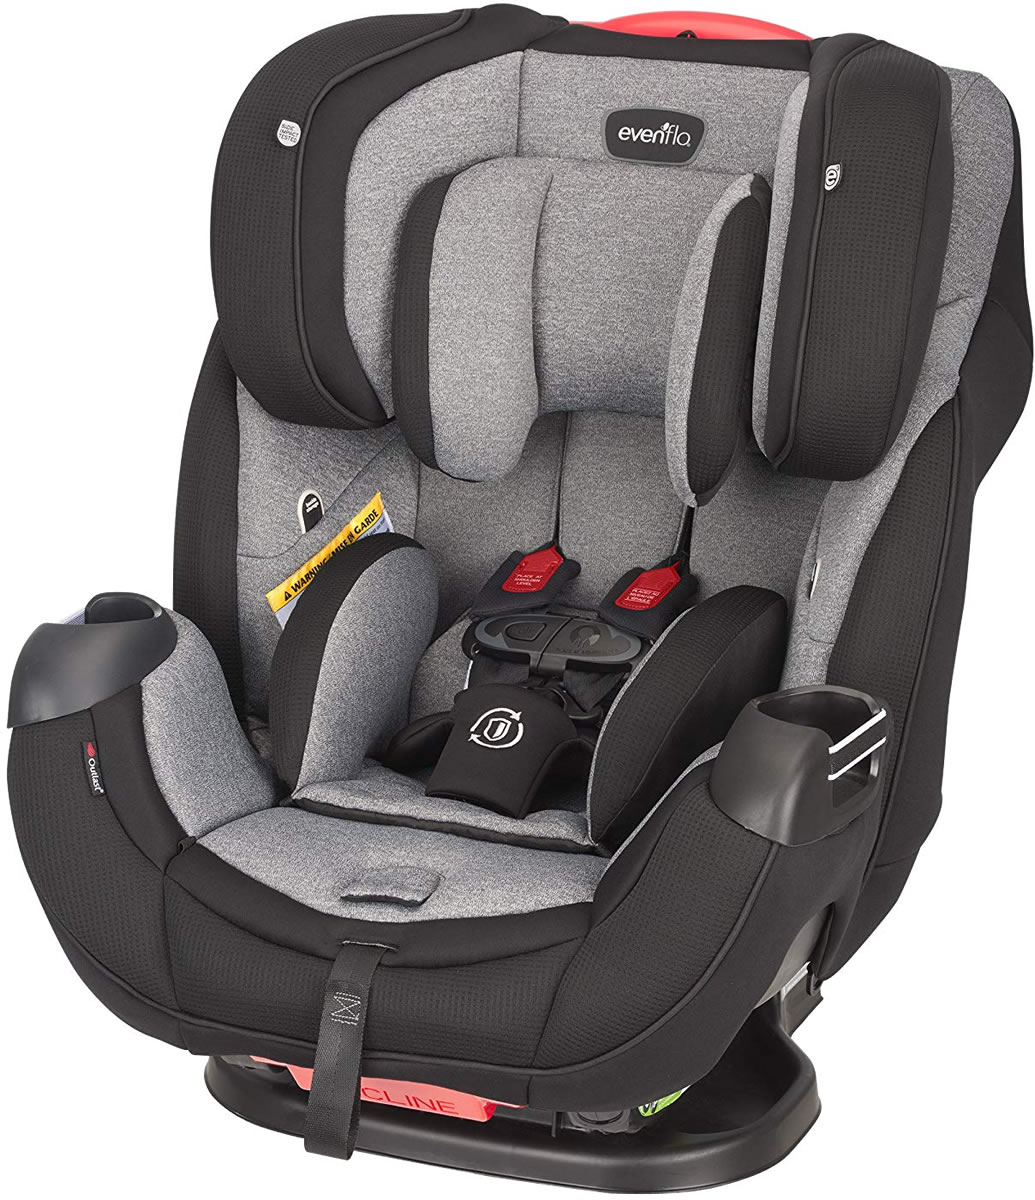 Evenflo Platinum Symphony DLX All In One Car Seat